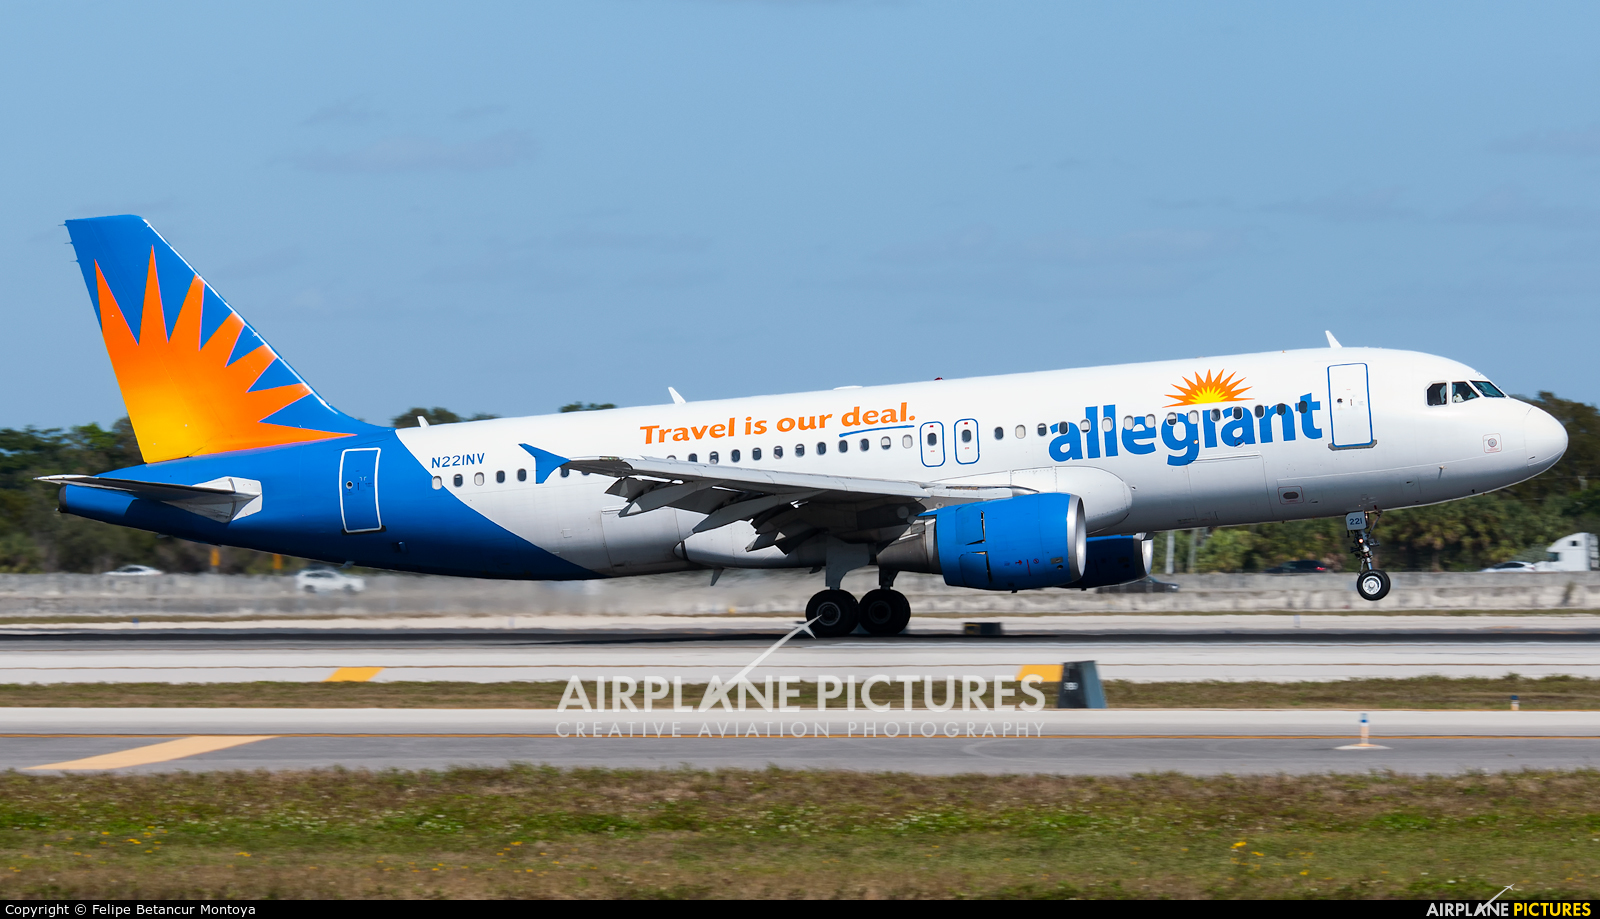 Allegiant Air N221NV aircraft at Fort Lauderdale - Hollywood Intl